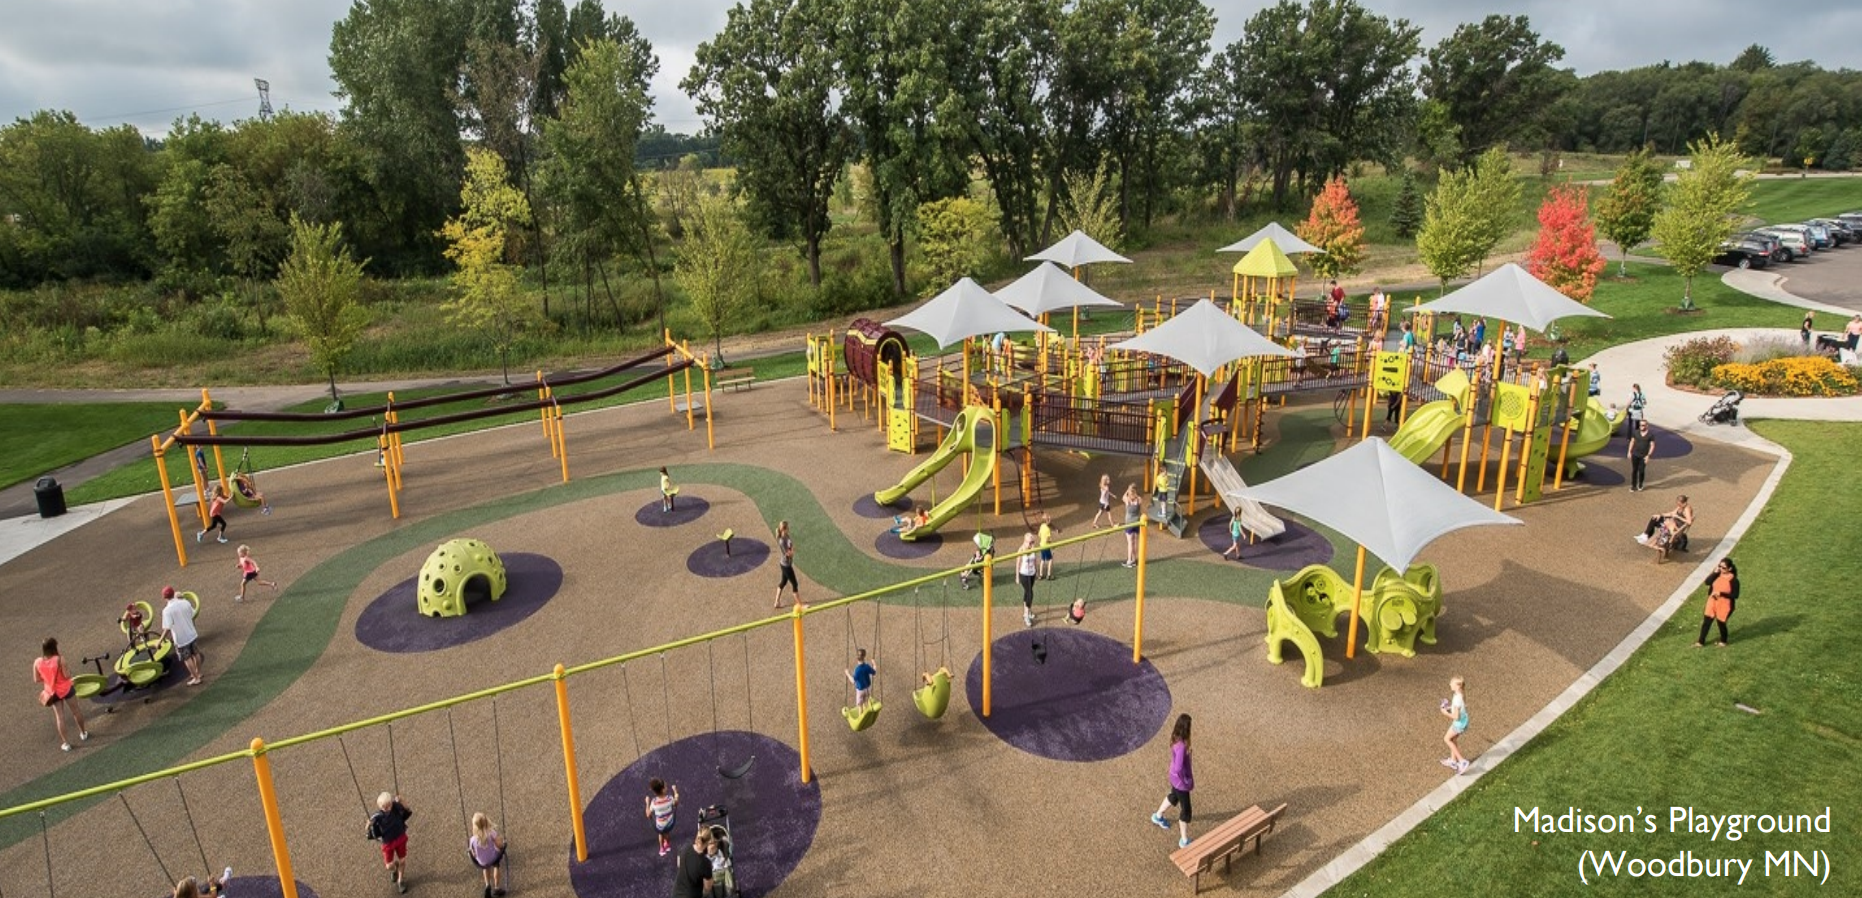 An example of an all-inclusive park in Woodbury, Minnesota (Photo: City of Sioux Falls)